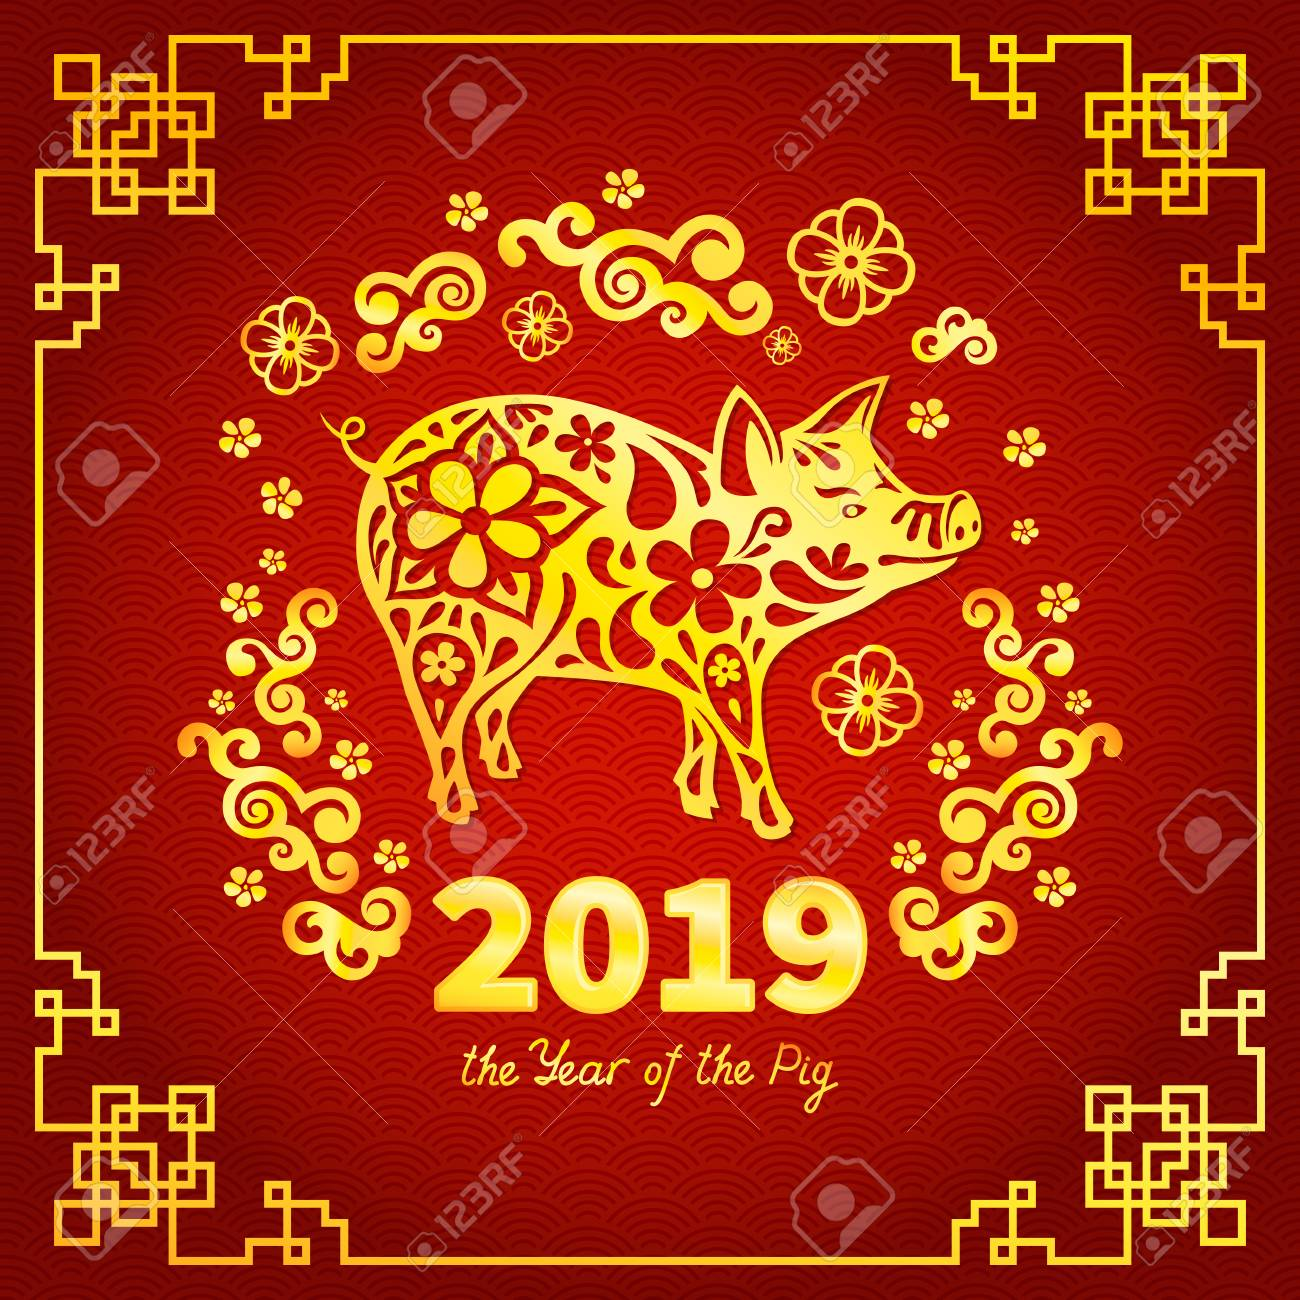 pig is a symbol of the 2019 chinese new year greeting card in oriental style